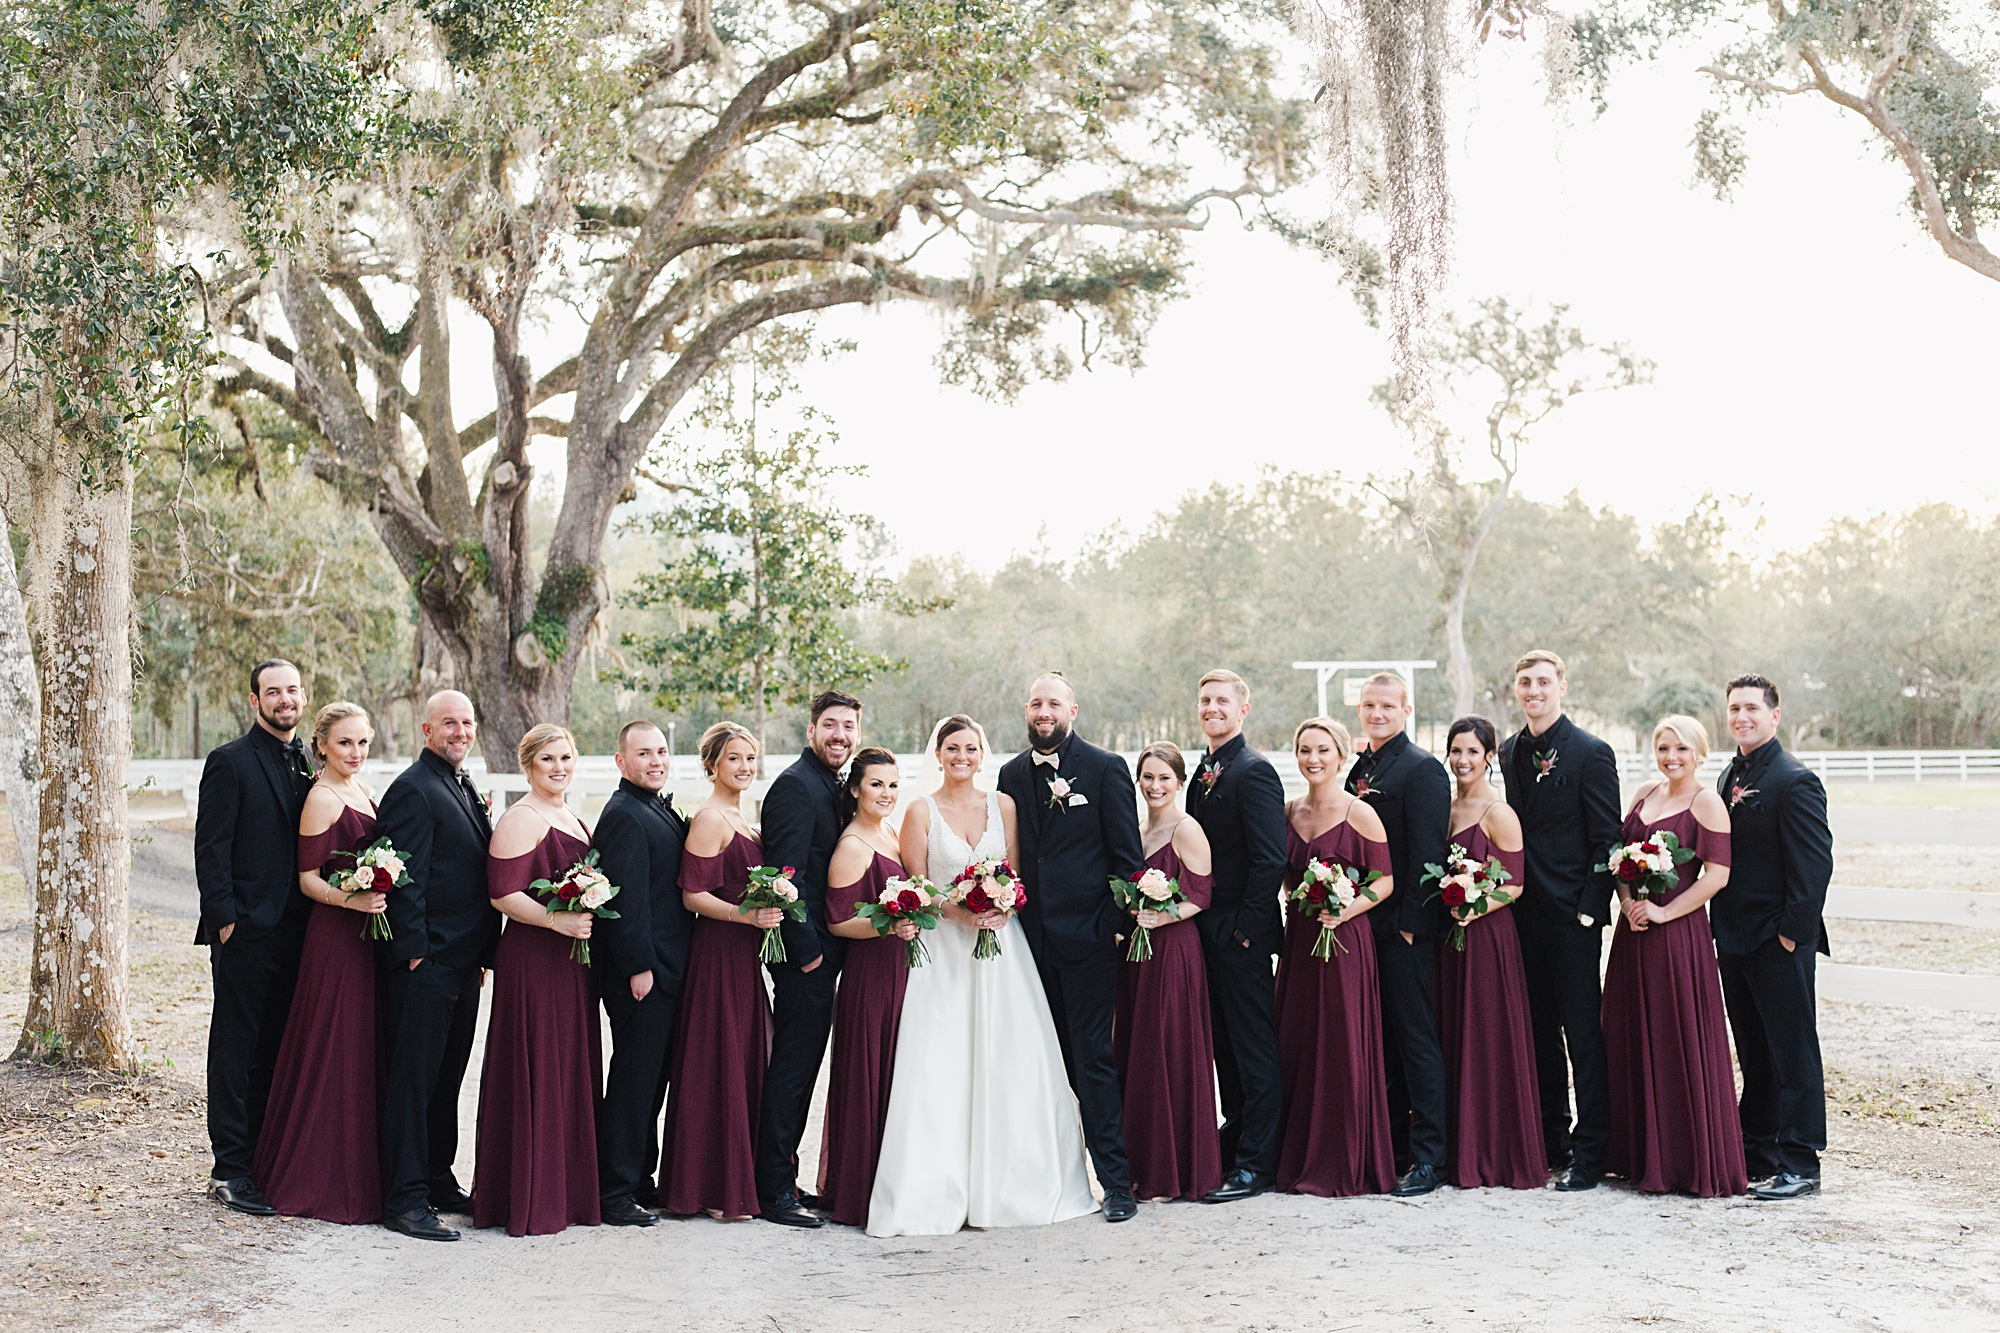 burgundy and black wedding party